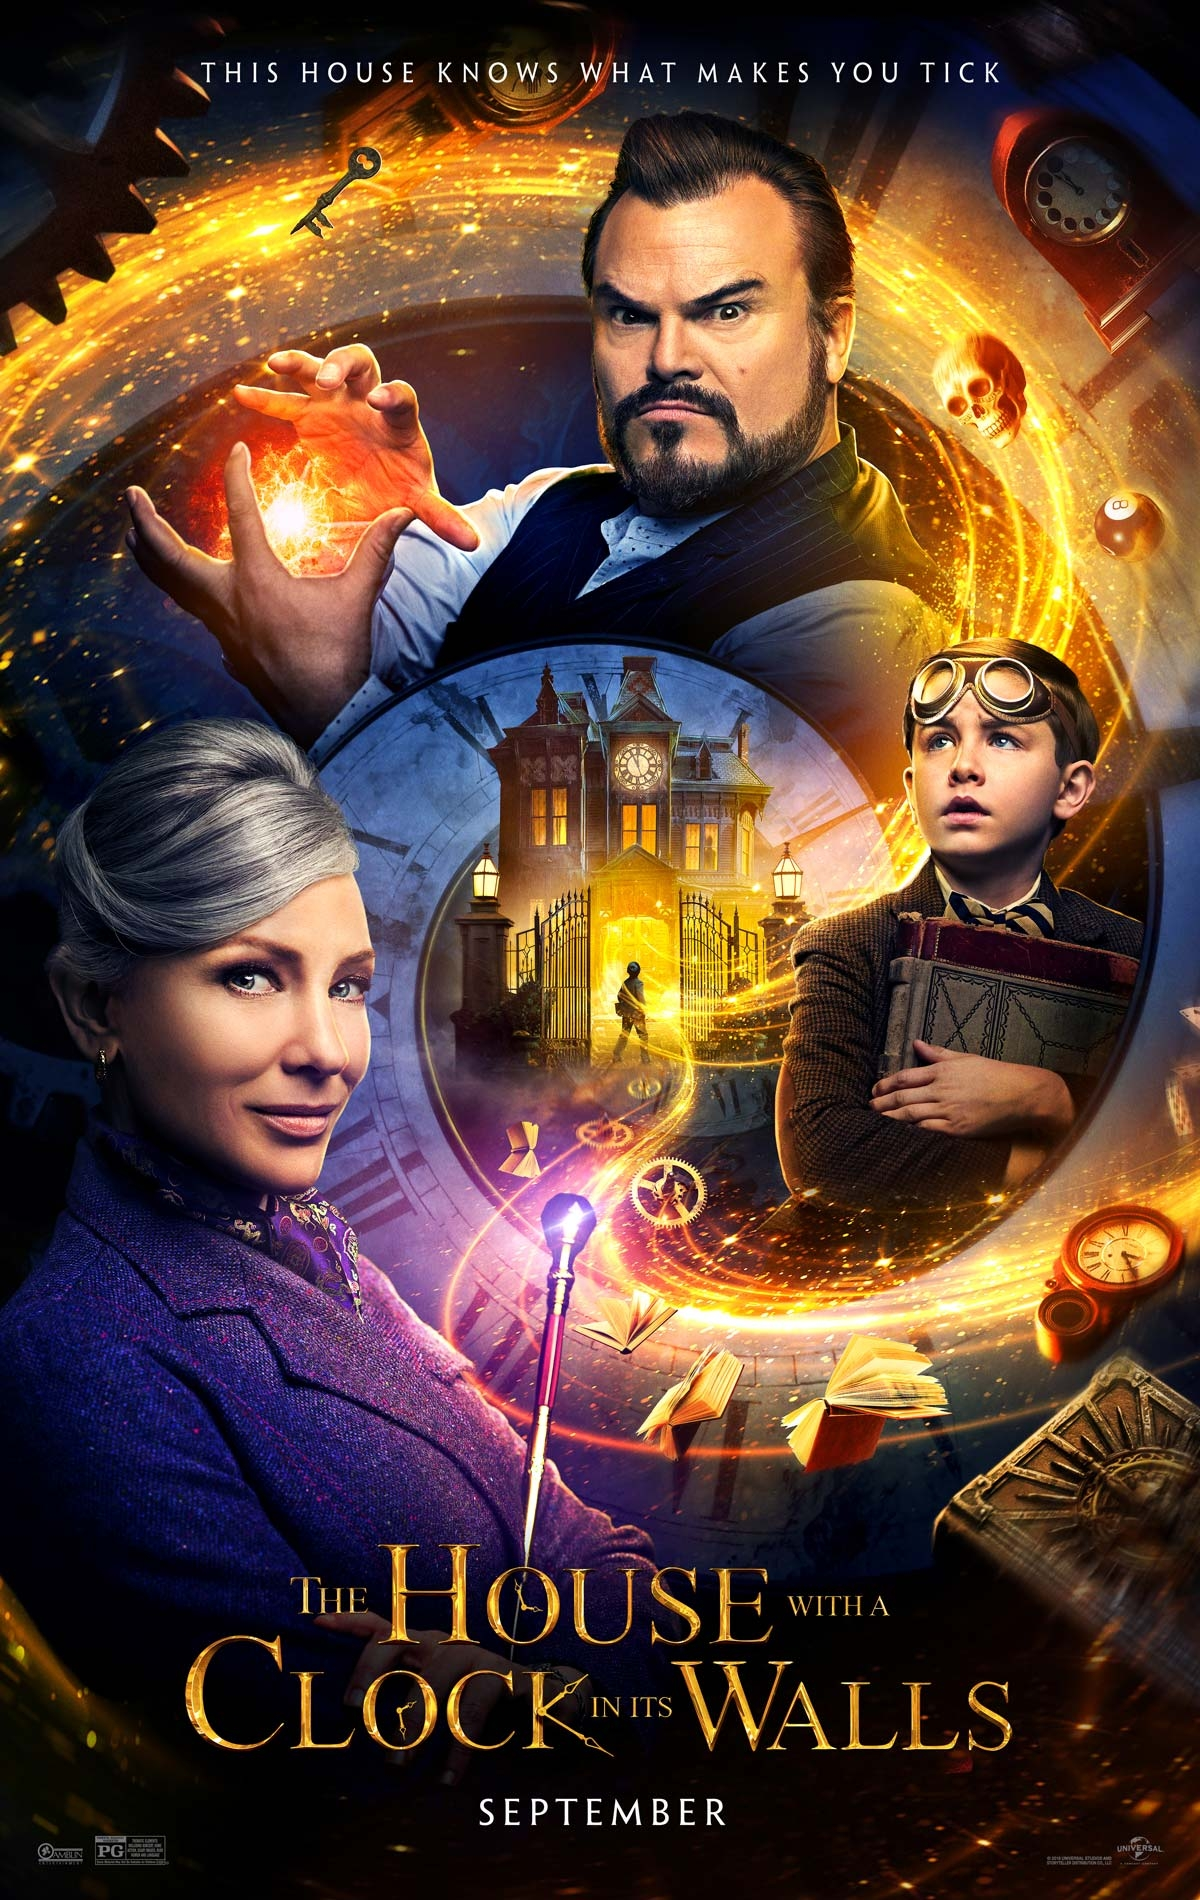 The House with a Clock in Its Walls - Poster 1